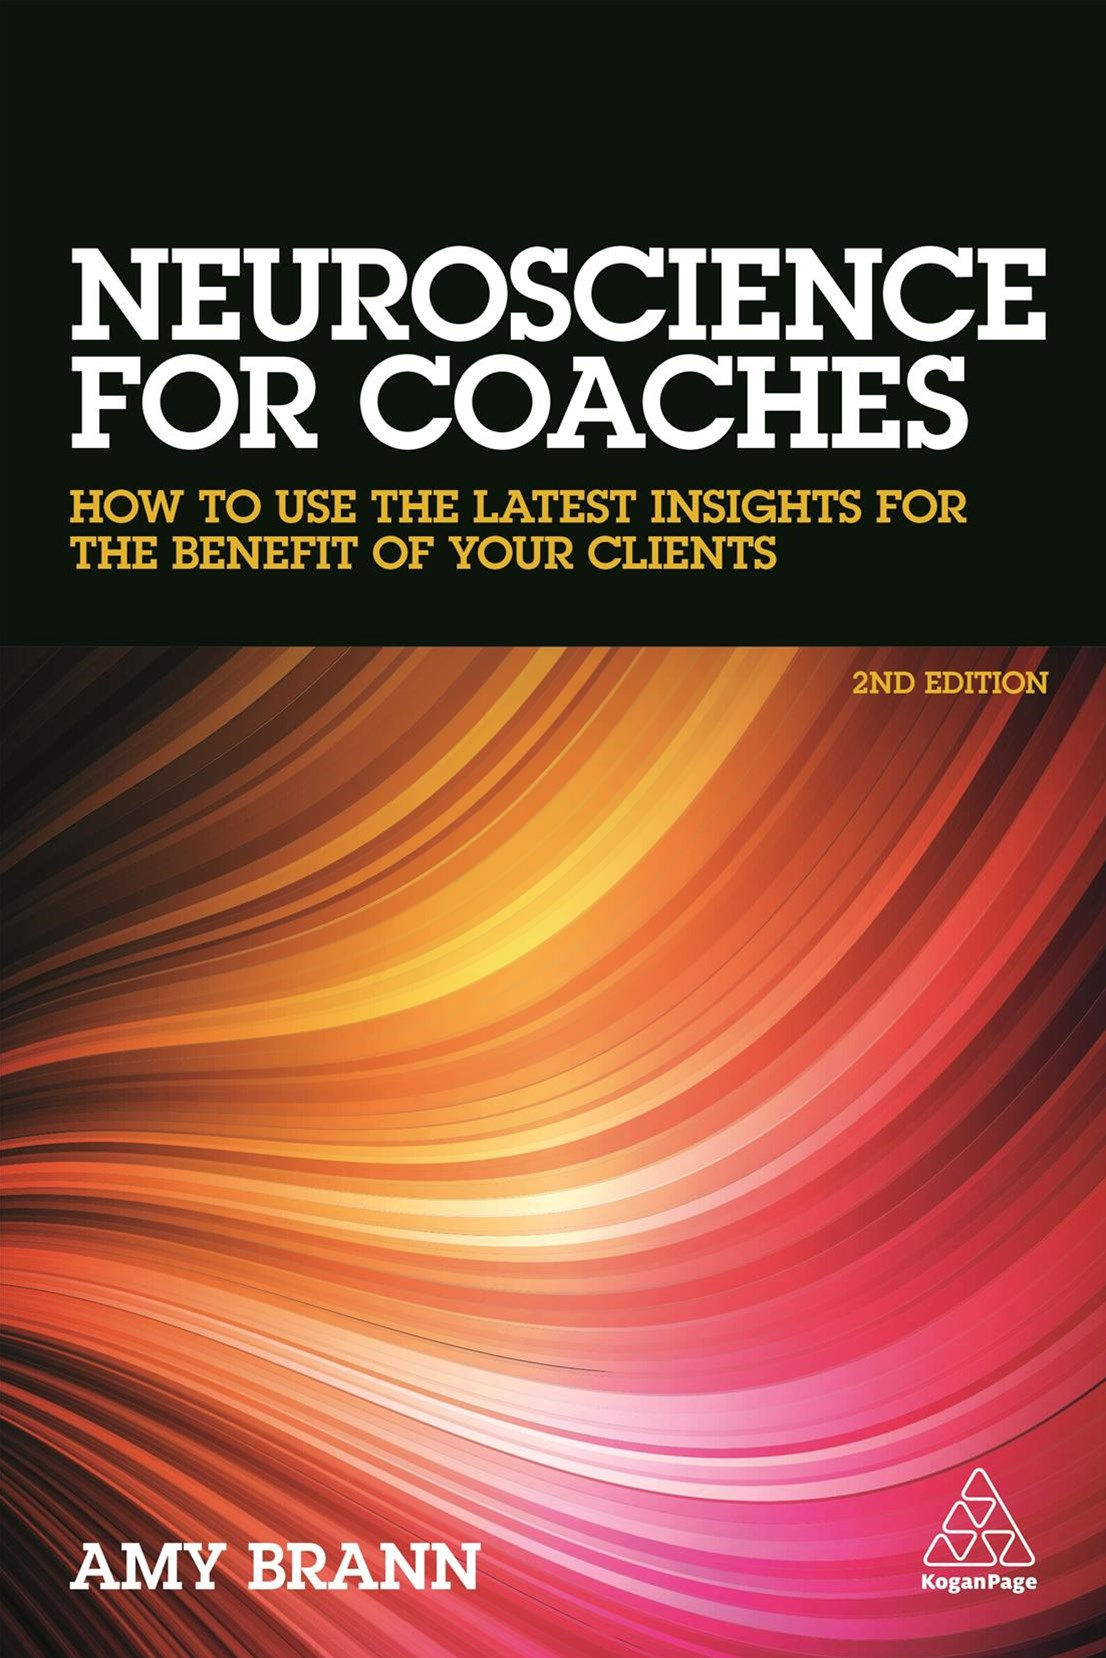 Neuroscience for Coaches: How to Use the Latest Insights for the Benefit of Your Clients 2ed